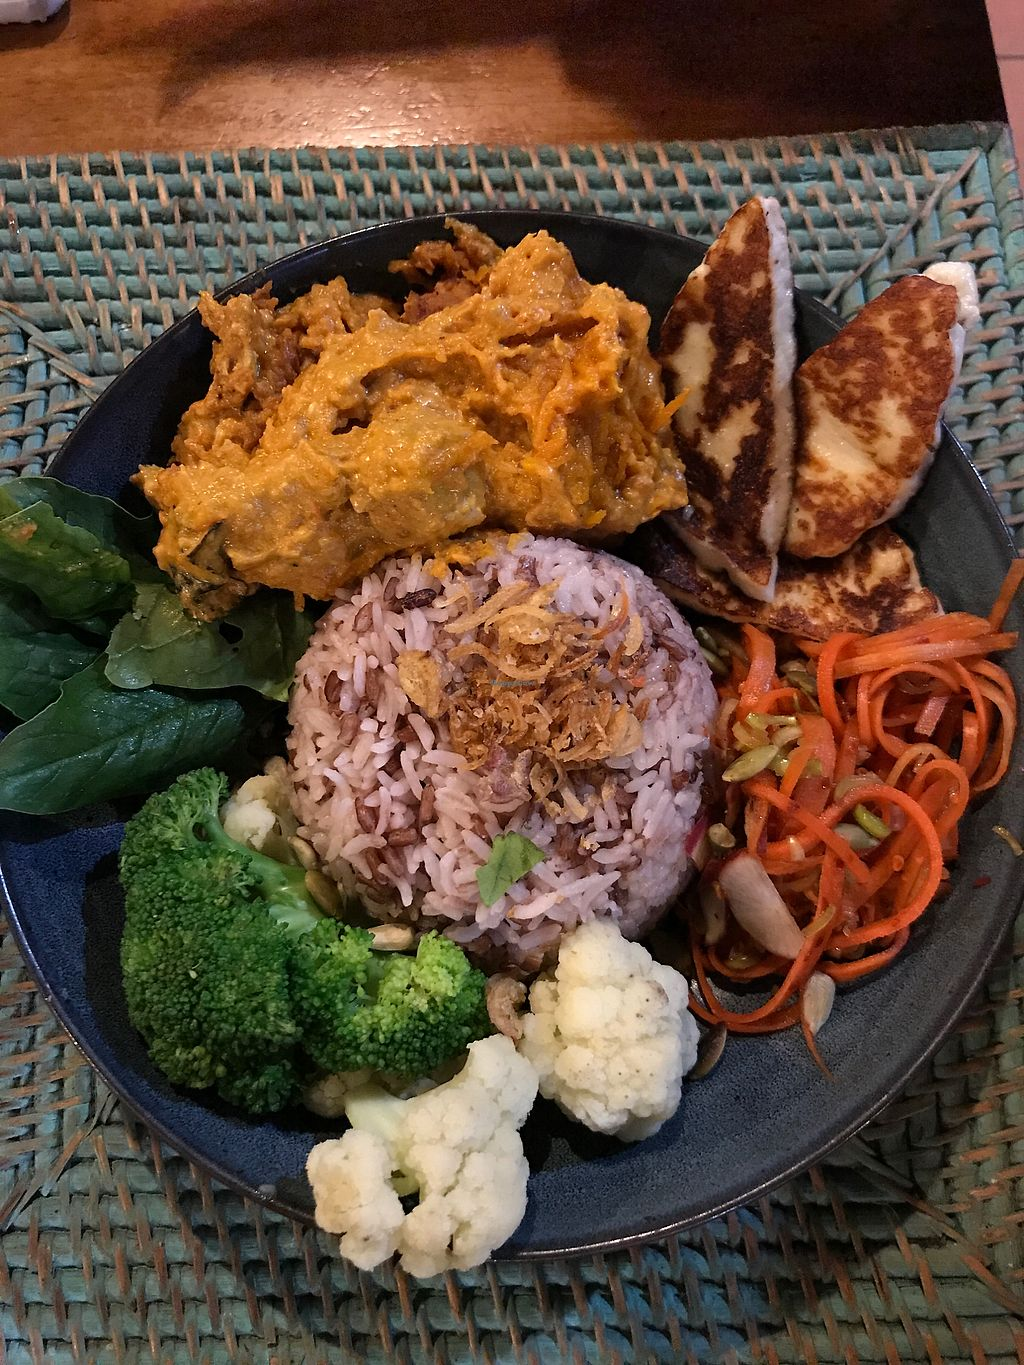 """Photo of The Cashew Tree  by <a href=""""/members/profile/LolaNachtigall"""">LolaNachtigall</a> <br/>Buddha Bowl <br/> November 18, 2017  - <a href='/contact/abuse/image/75644/326677'>Report</a>"""